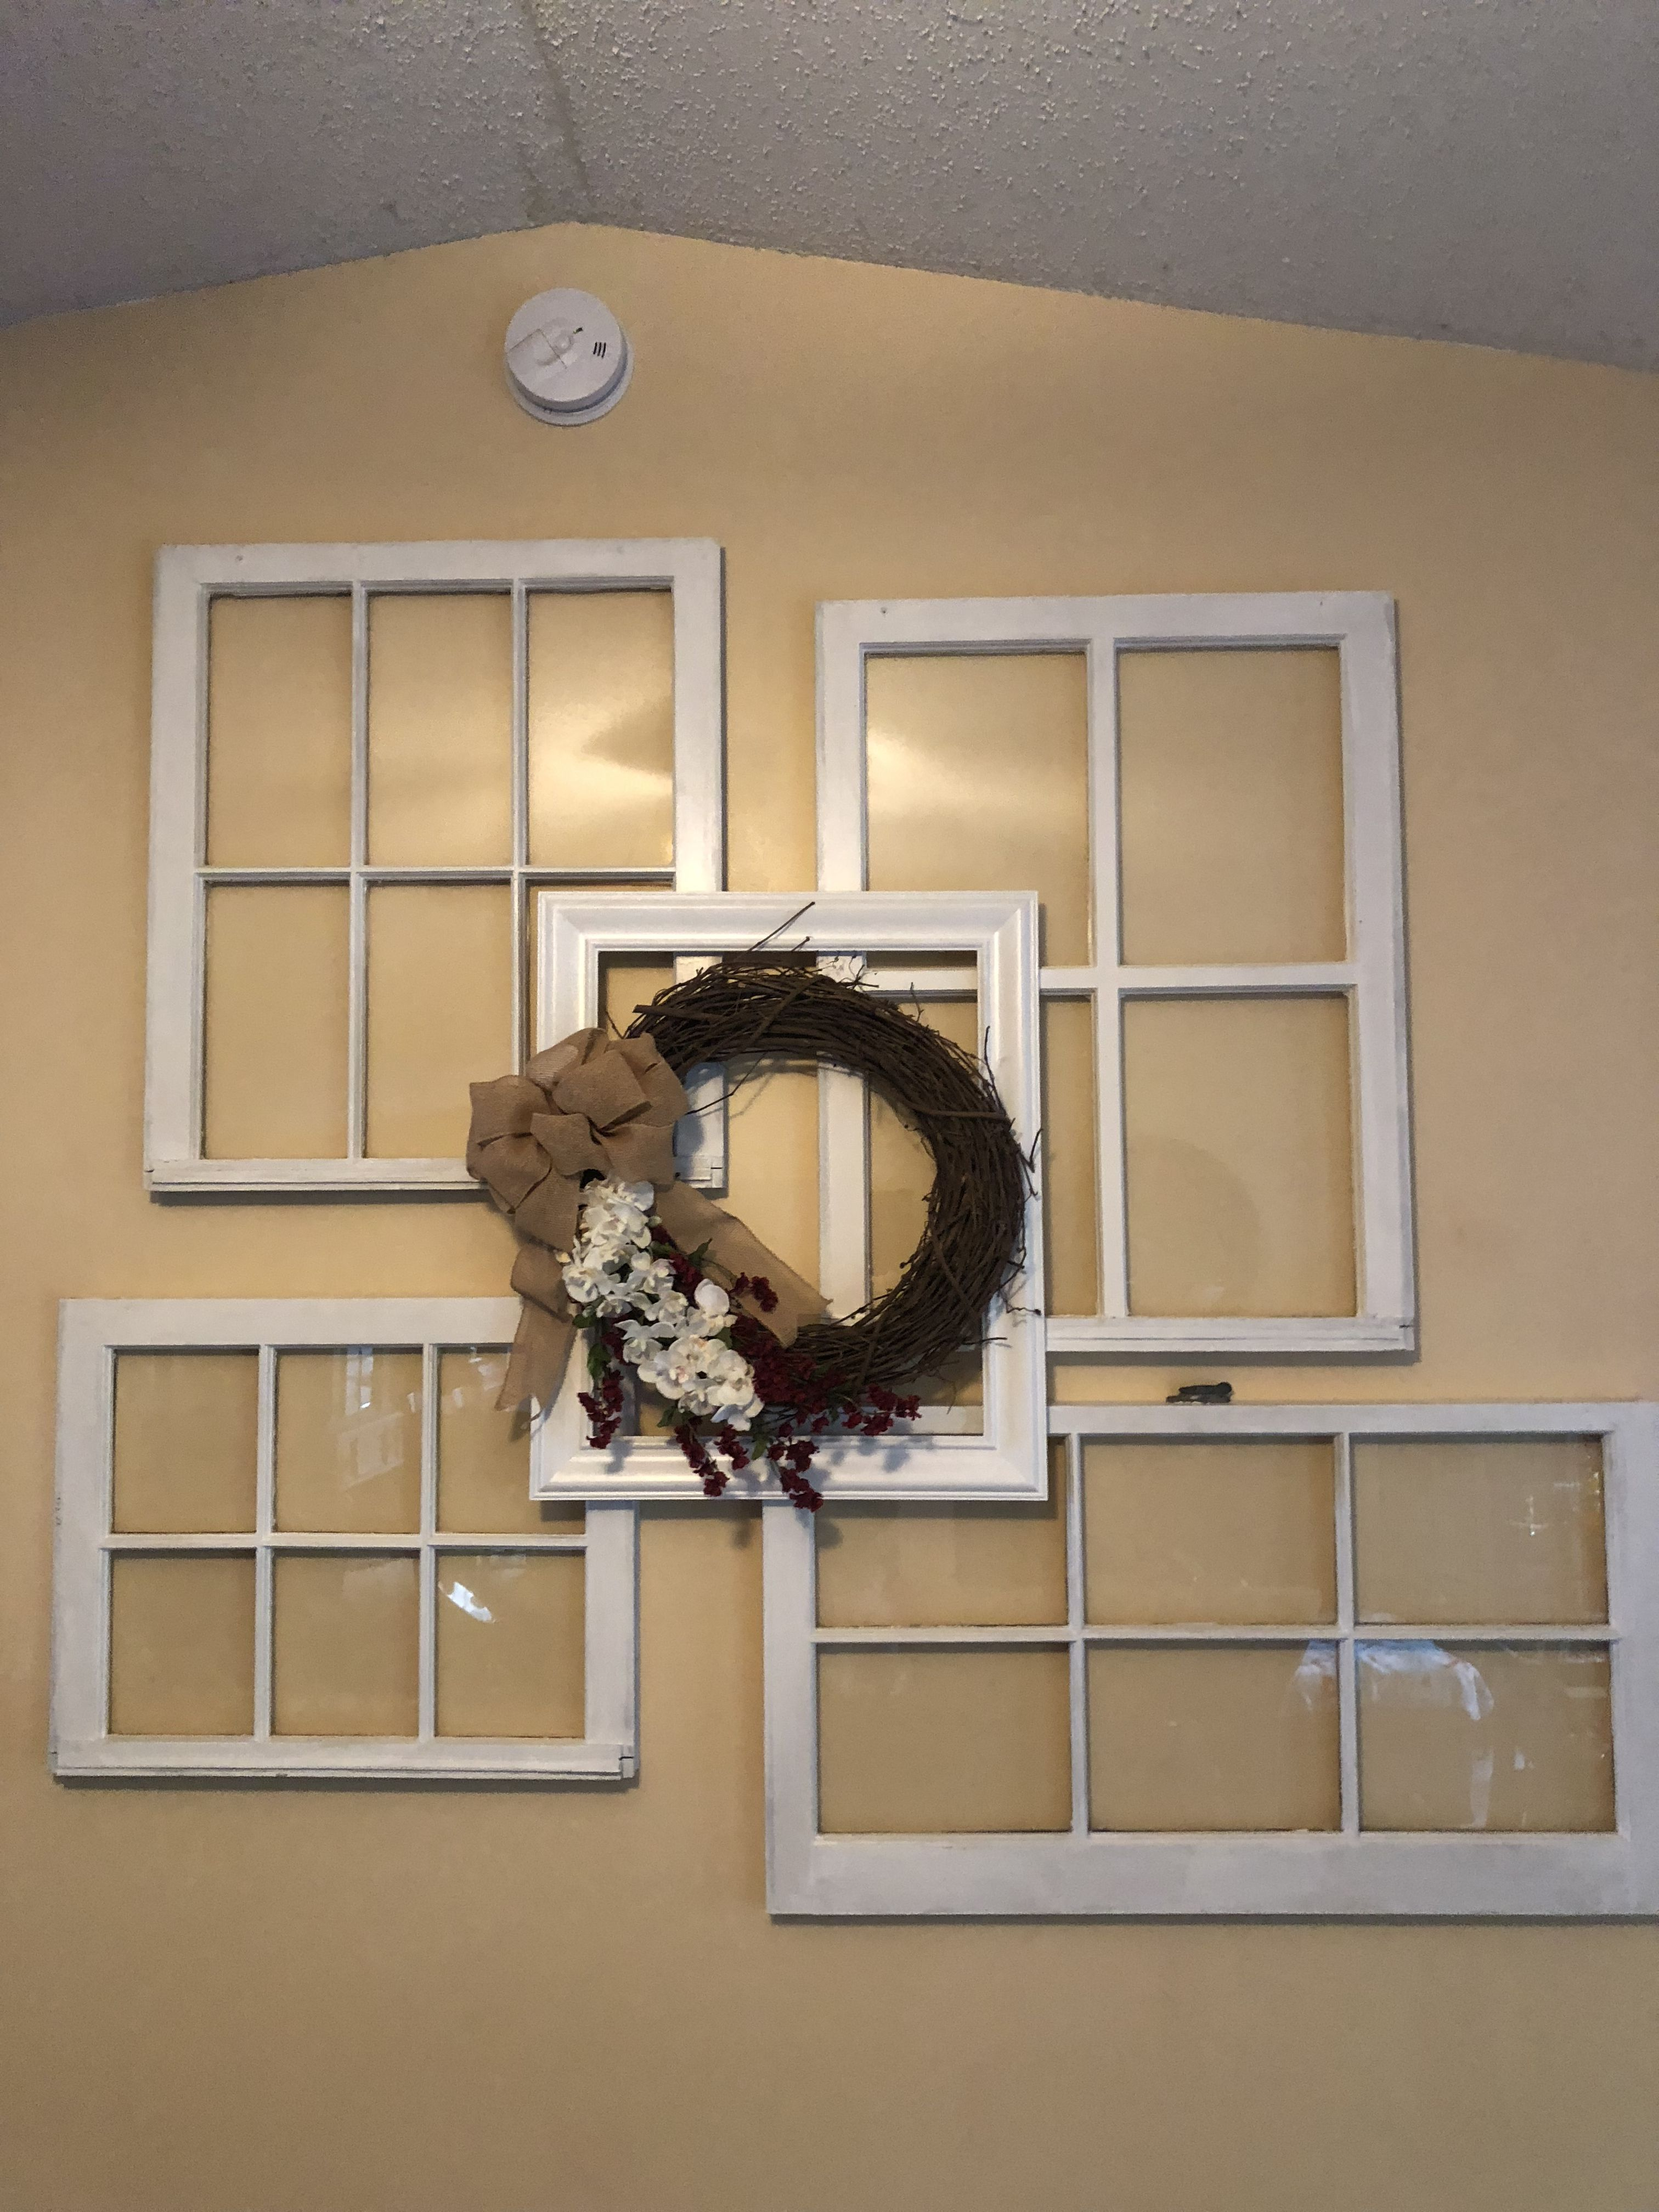 Four Old Vintage Windows Painted Picture Frame And A Wreath Living Room Wall Display Change Wreath For Painted Picture Frames Wall Display Vintage Windows